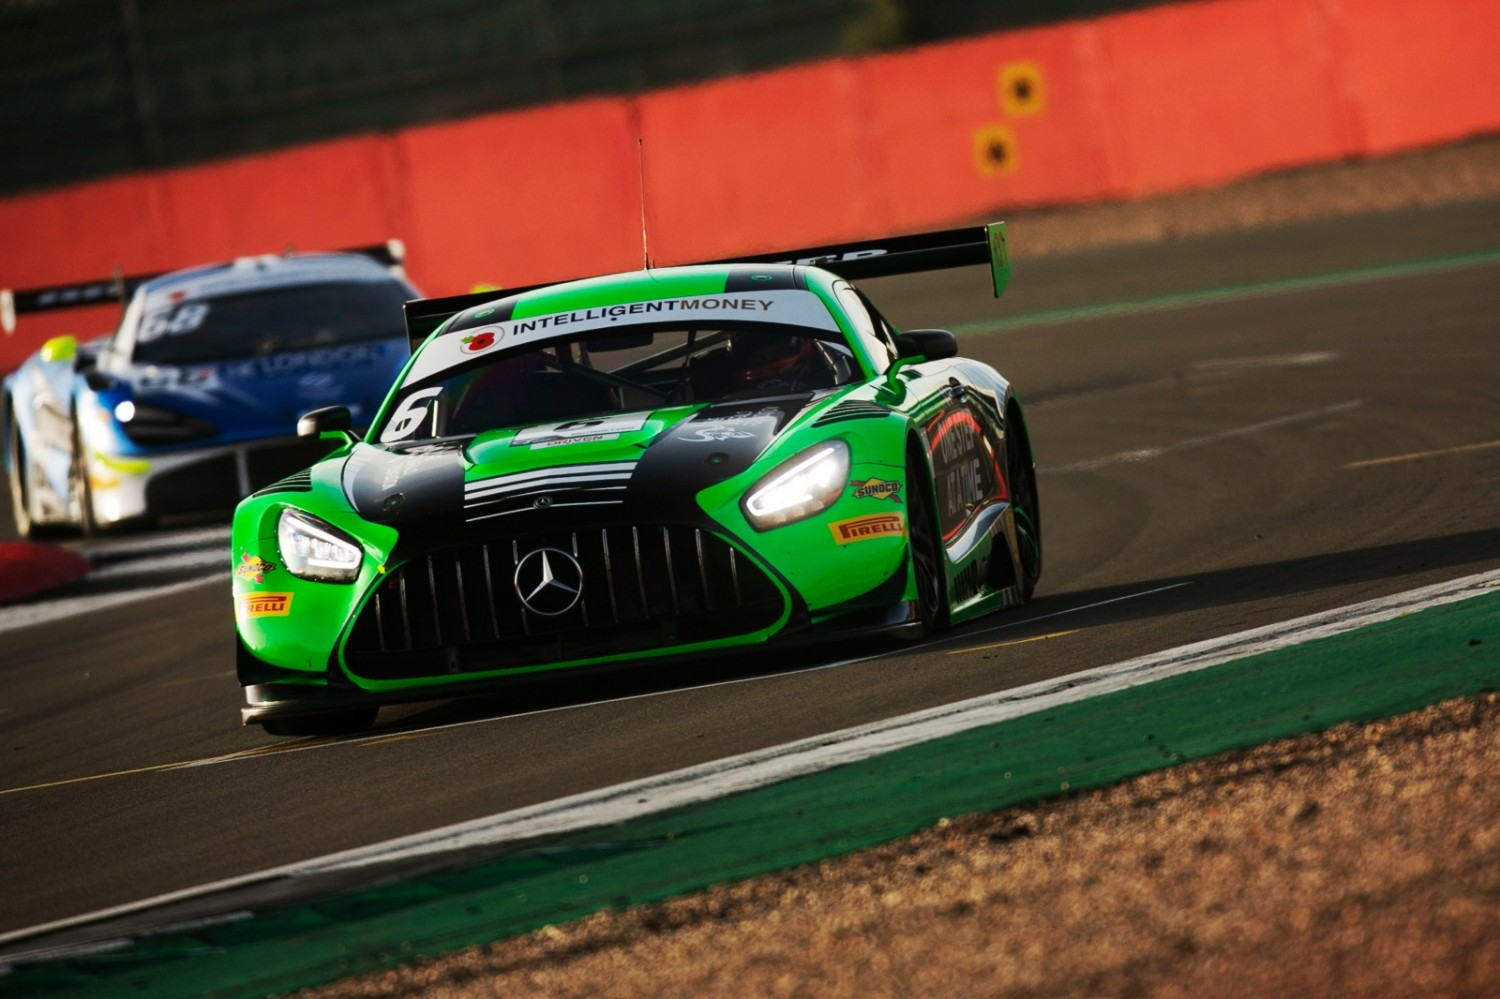 Silverstone FP1: RAM's Buurman and TF Sport's Caroline set record early pace